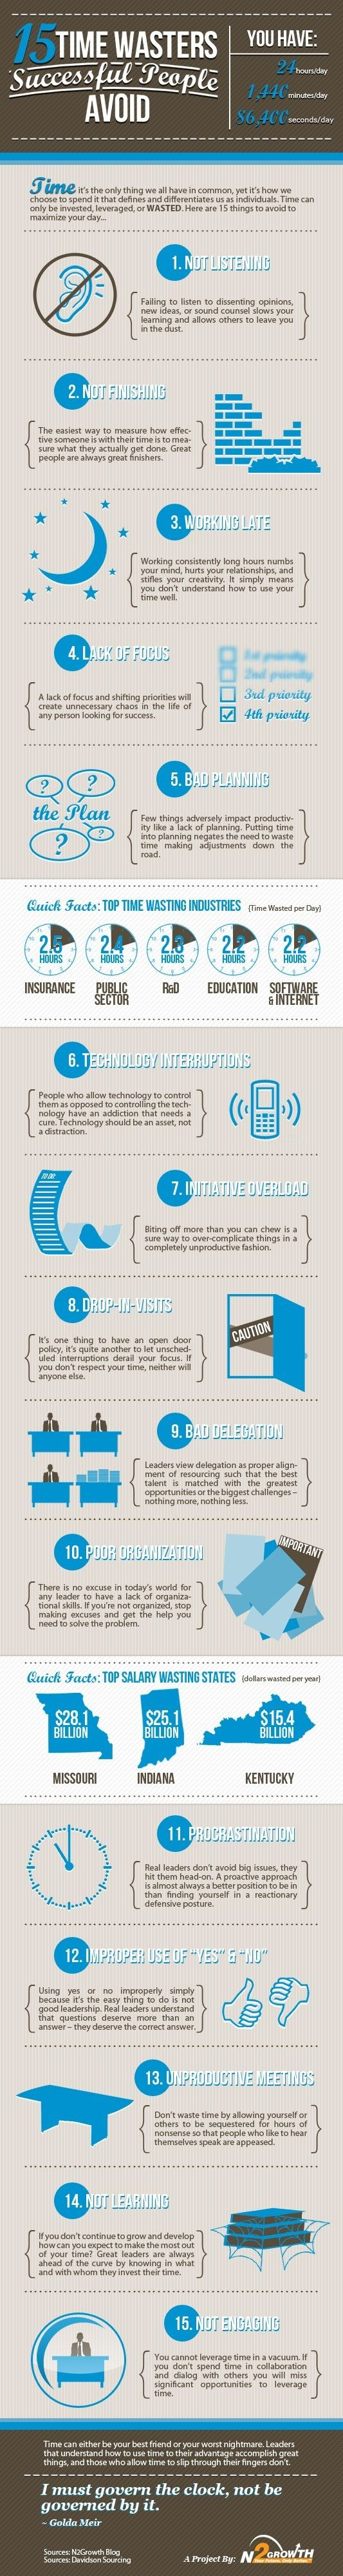 15+ Time Waster you should Avoid to Become Successful | All Infographics: